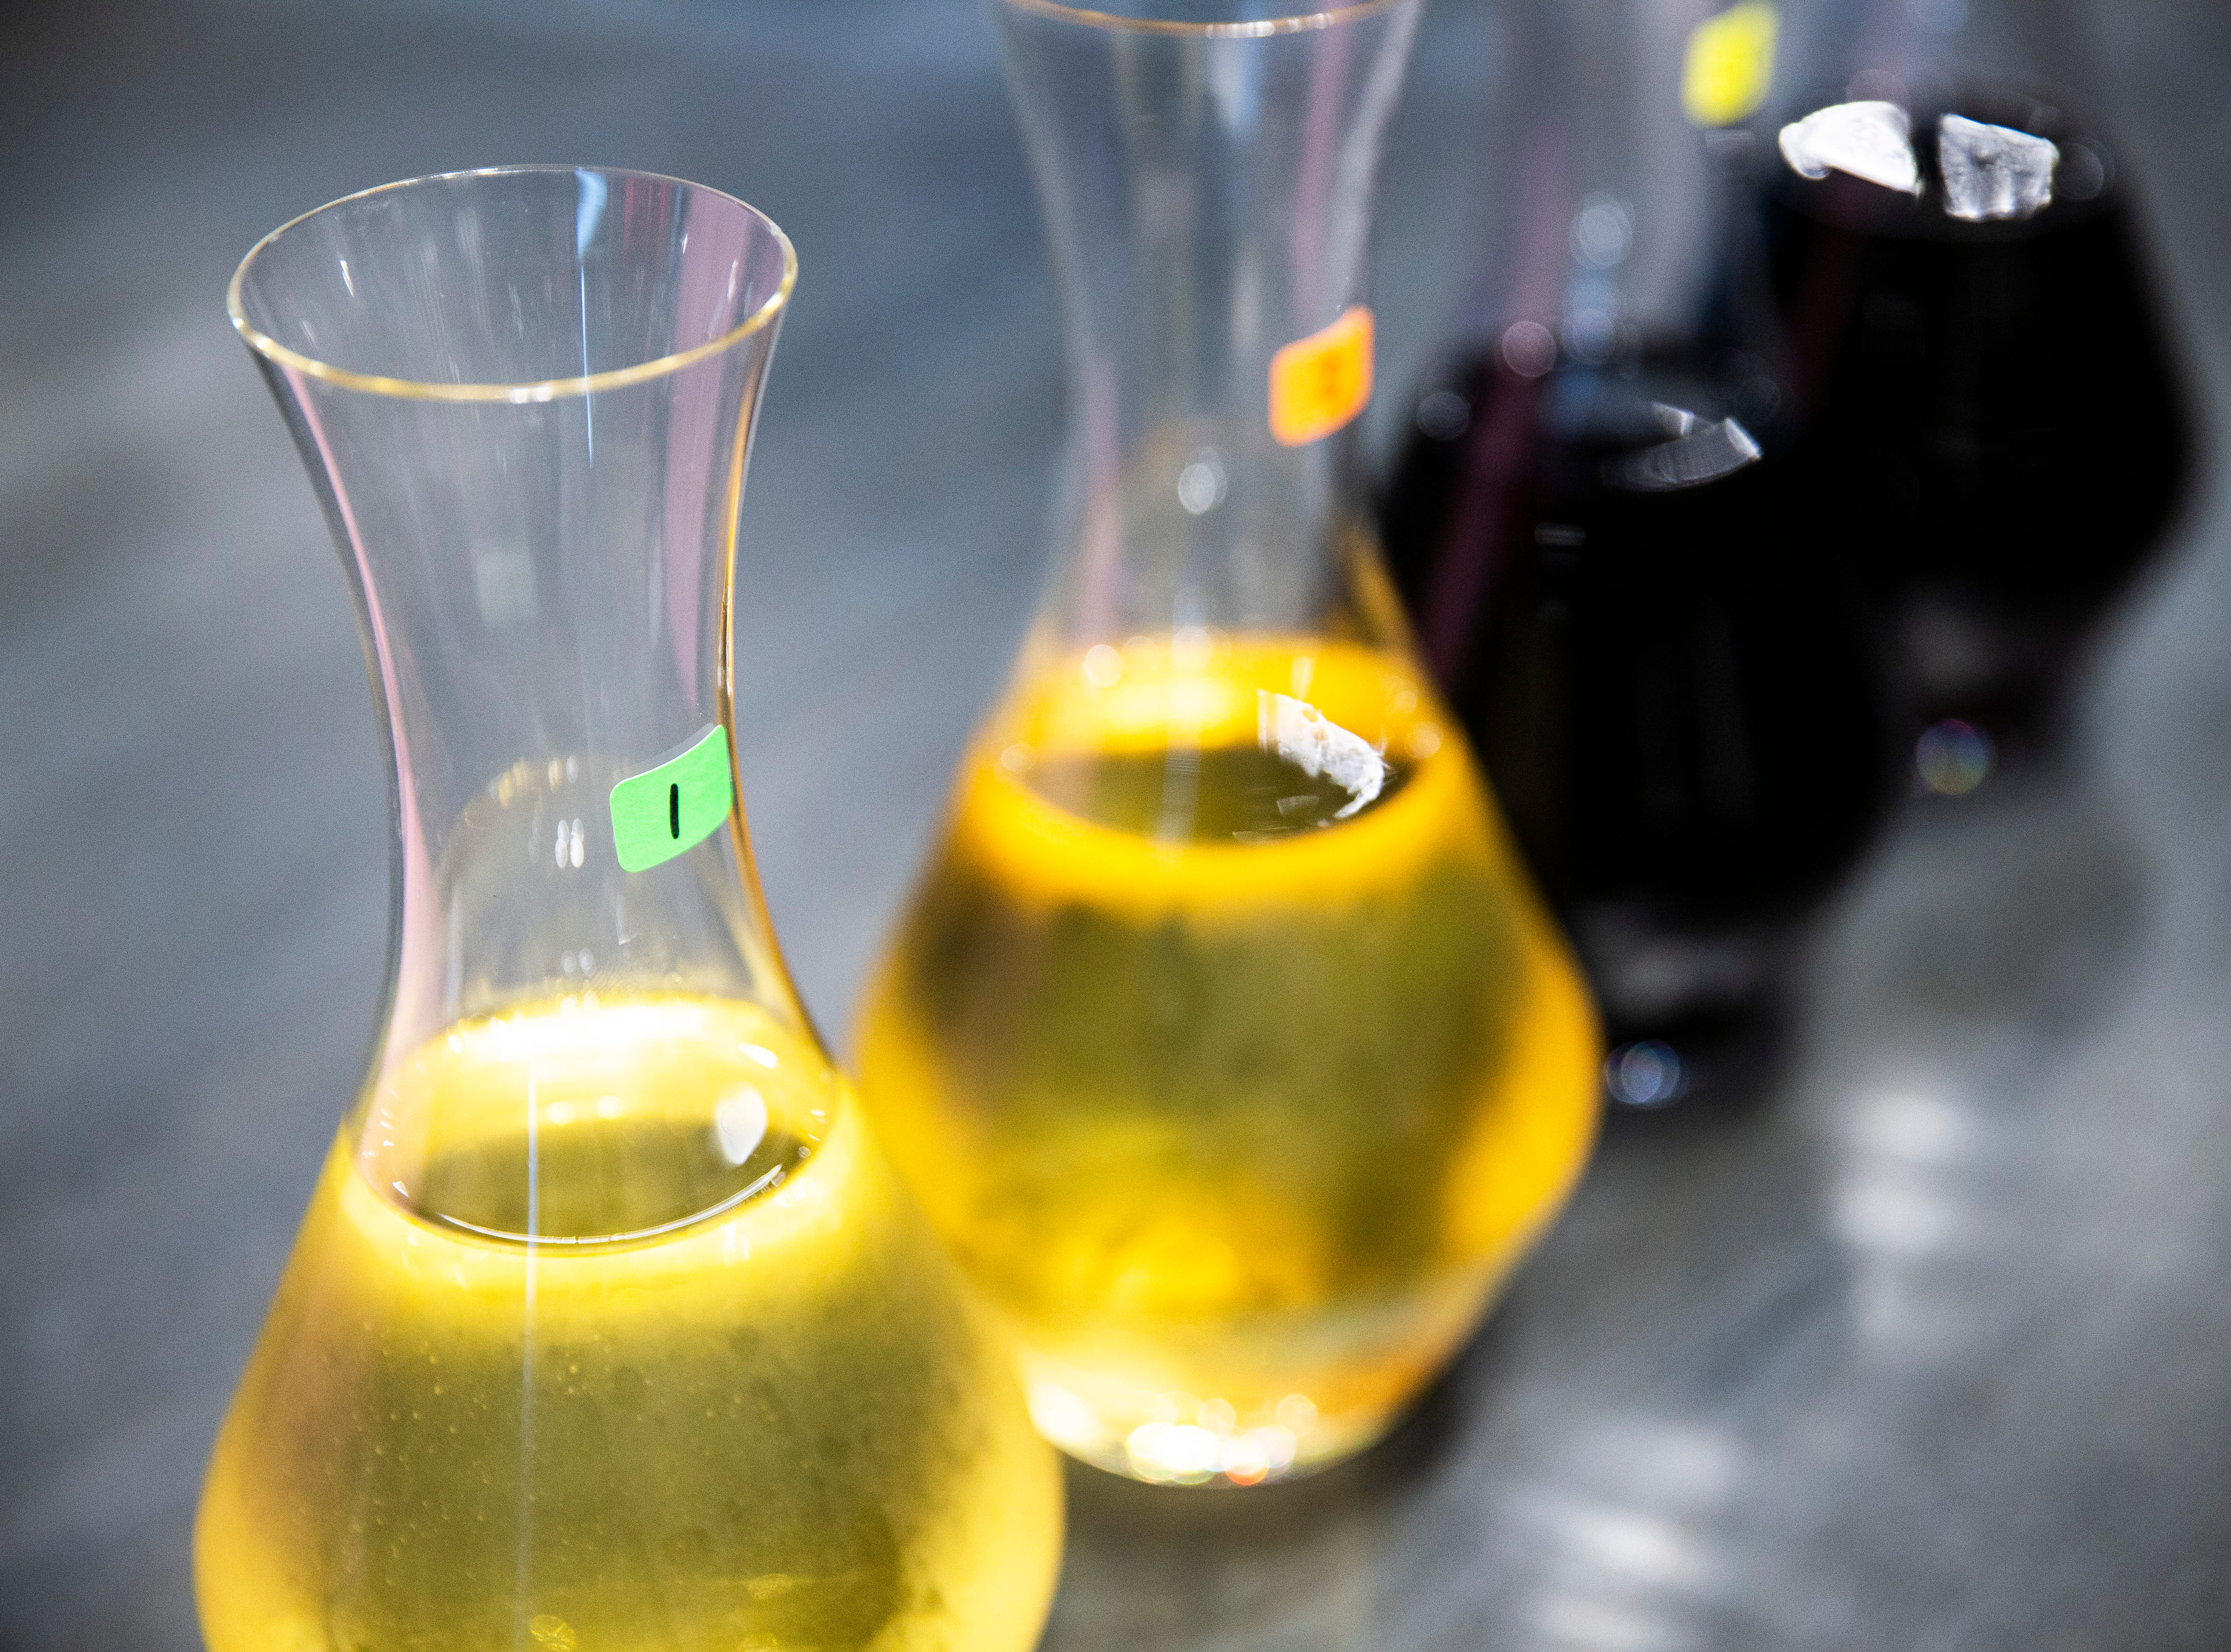 Numbers identify the four varieties of wine that were used in a blind taste-test during the Somms Showdown, organized by Break Thru Beverage Group, at The Cave Bistro & Wine Bar in Naples on Tuesday, Nov. 13, 2018.